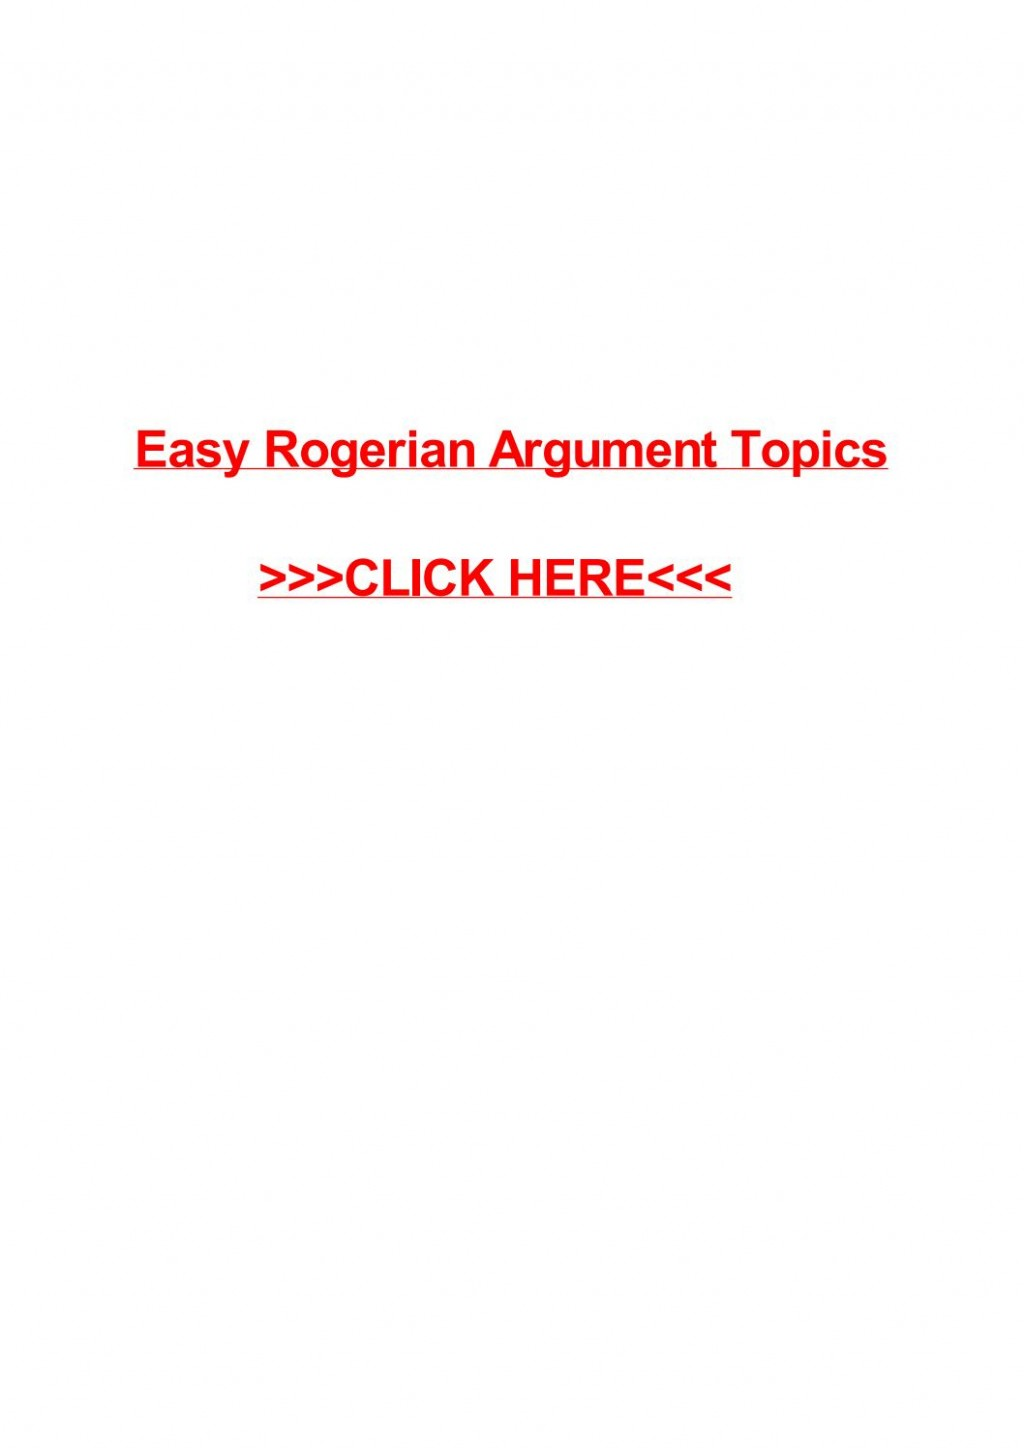 017 Page 1 Essay Example Rogerian Surprising Topics Paper Argument For College 2017 Large